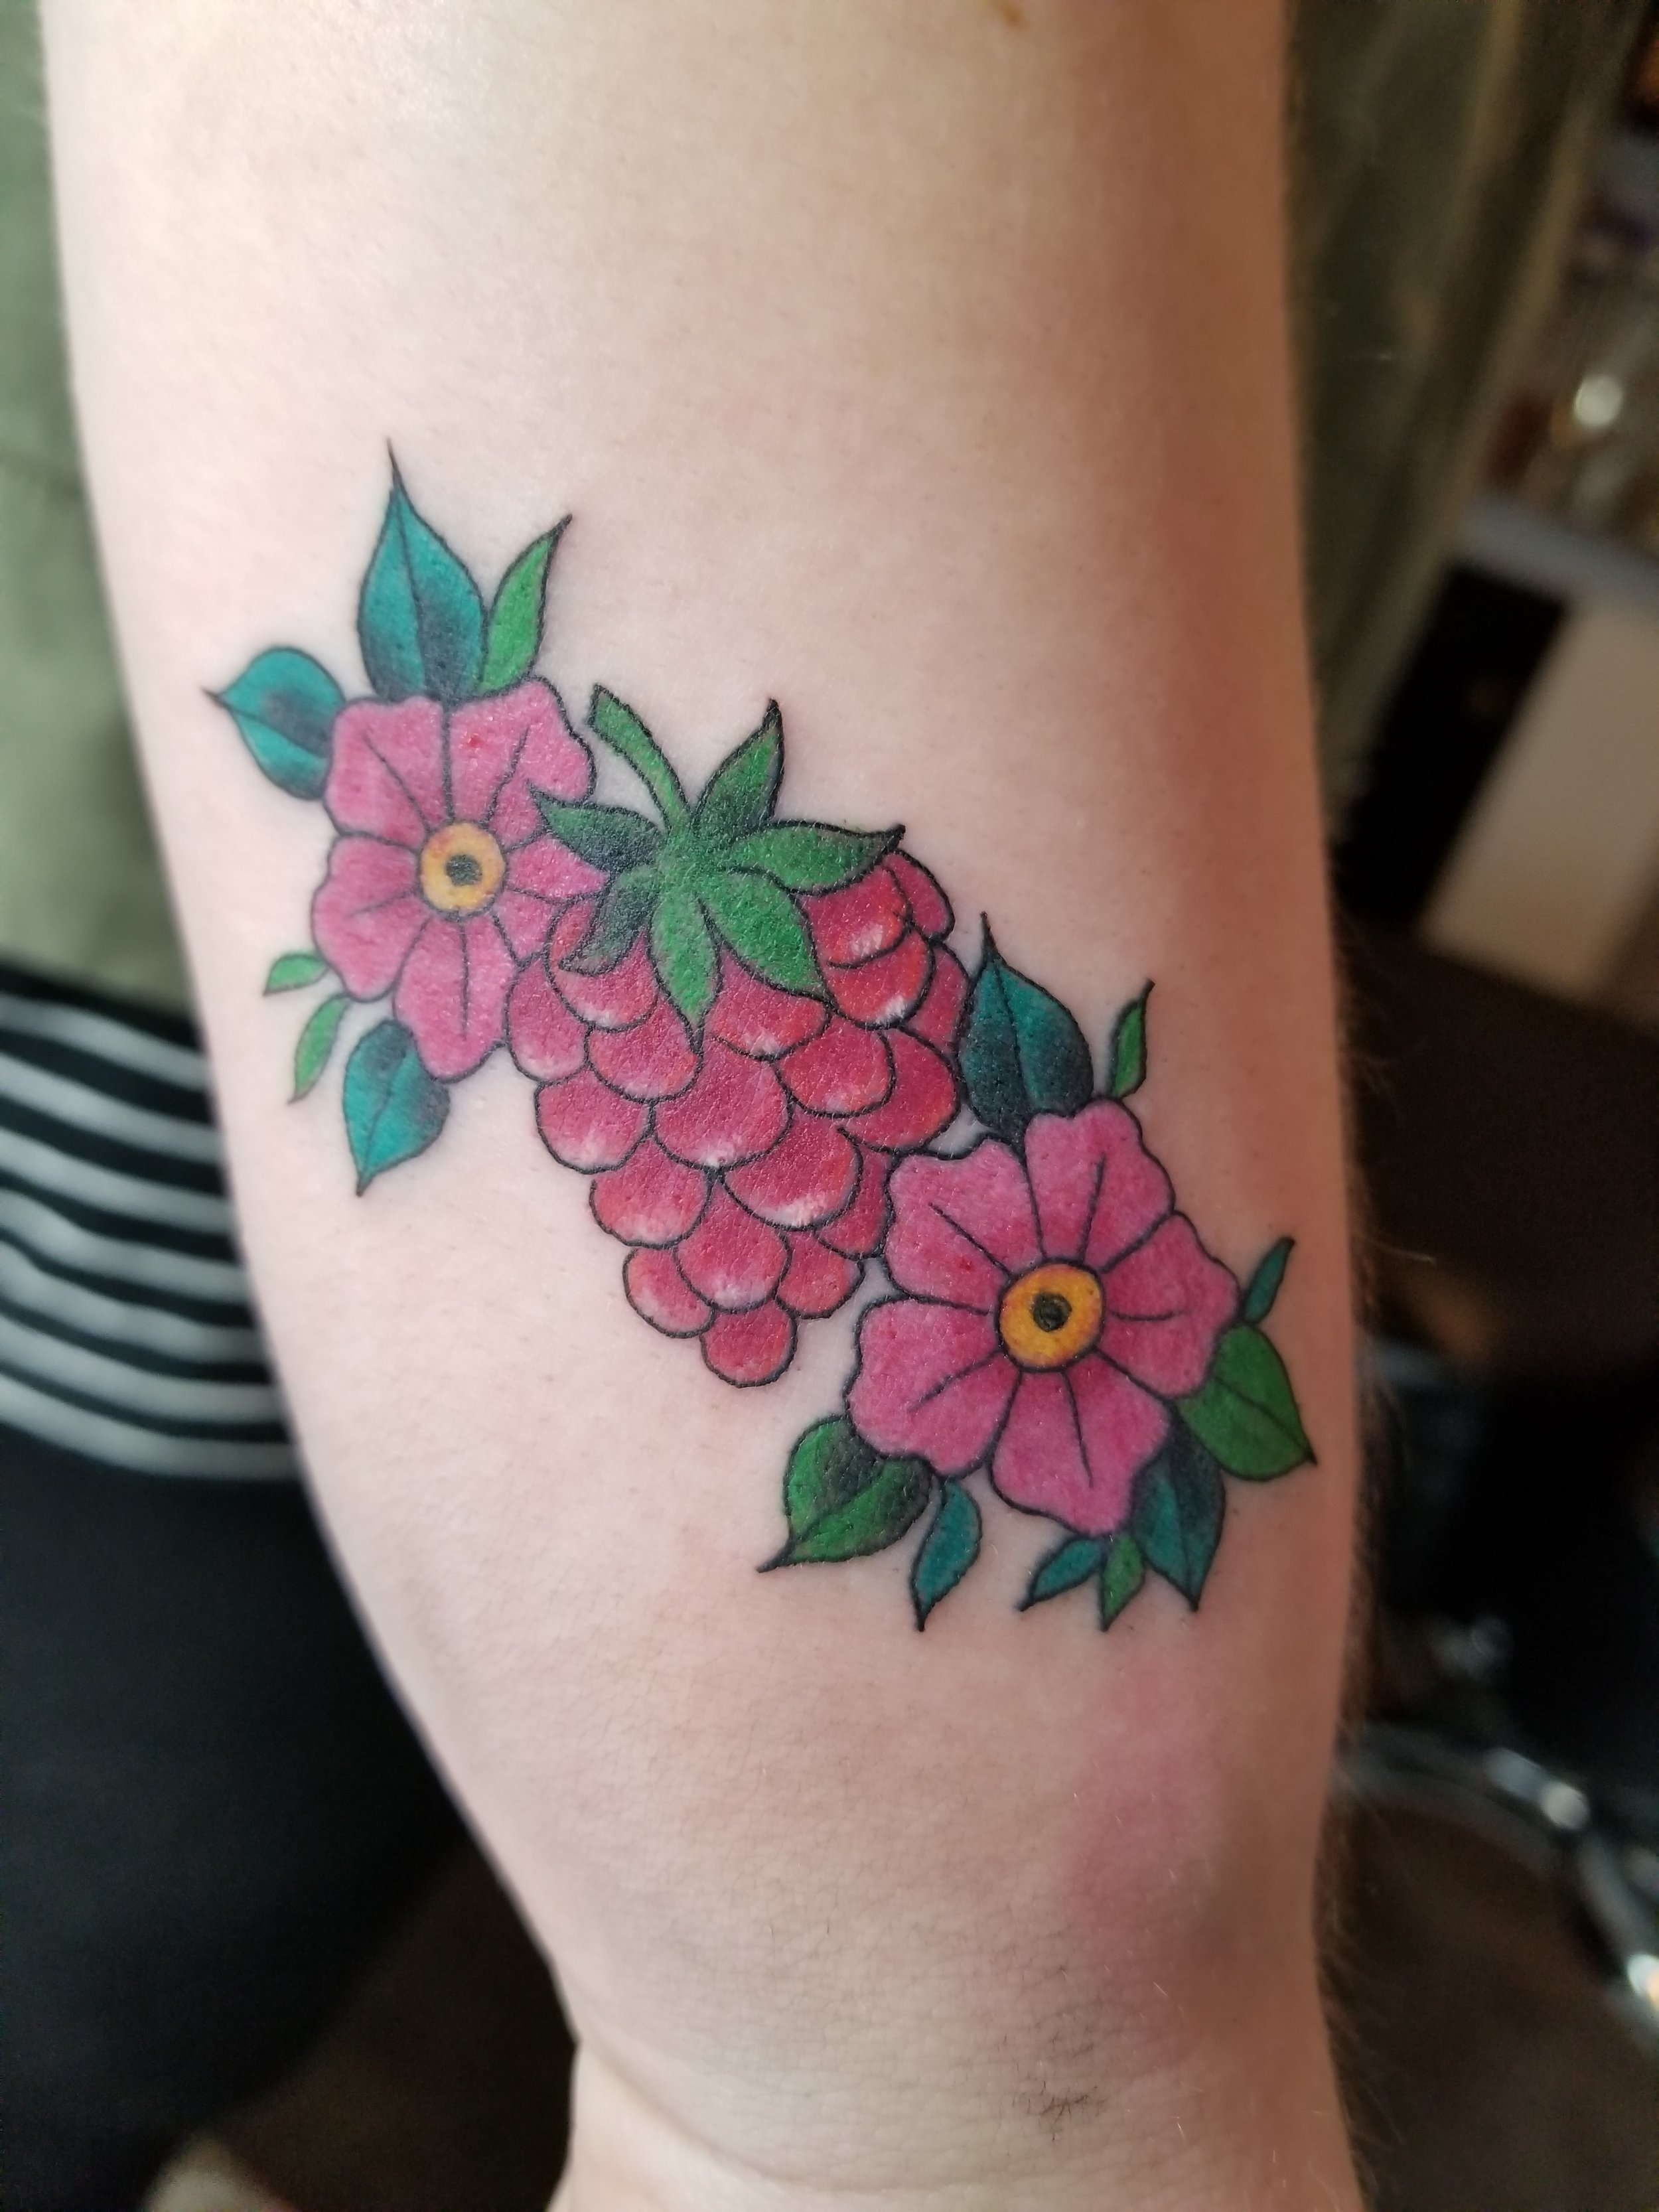 Raspberry and flowers